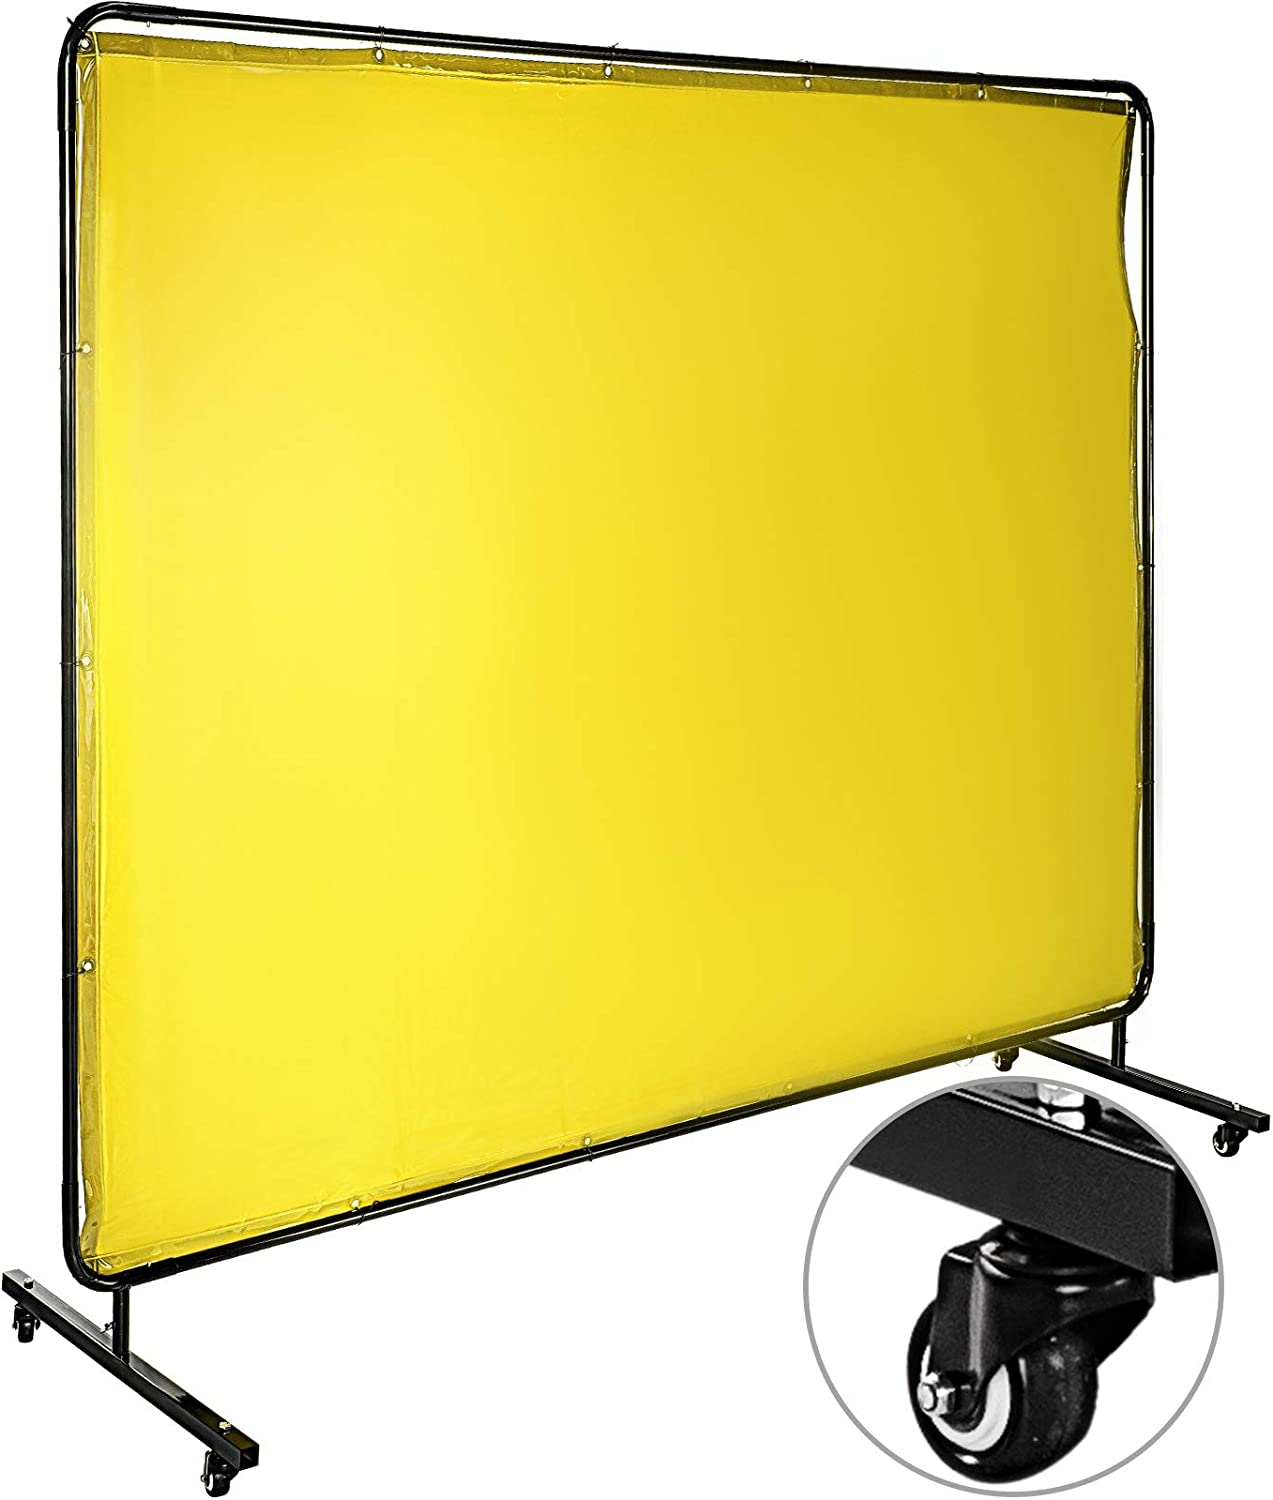 Mophorn Welding Purchase Screen with Frame 6' 8' Curtain Fort Worth Mall x